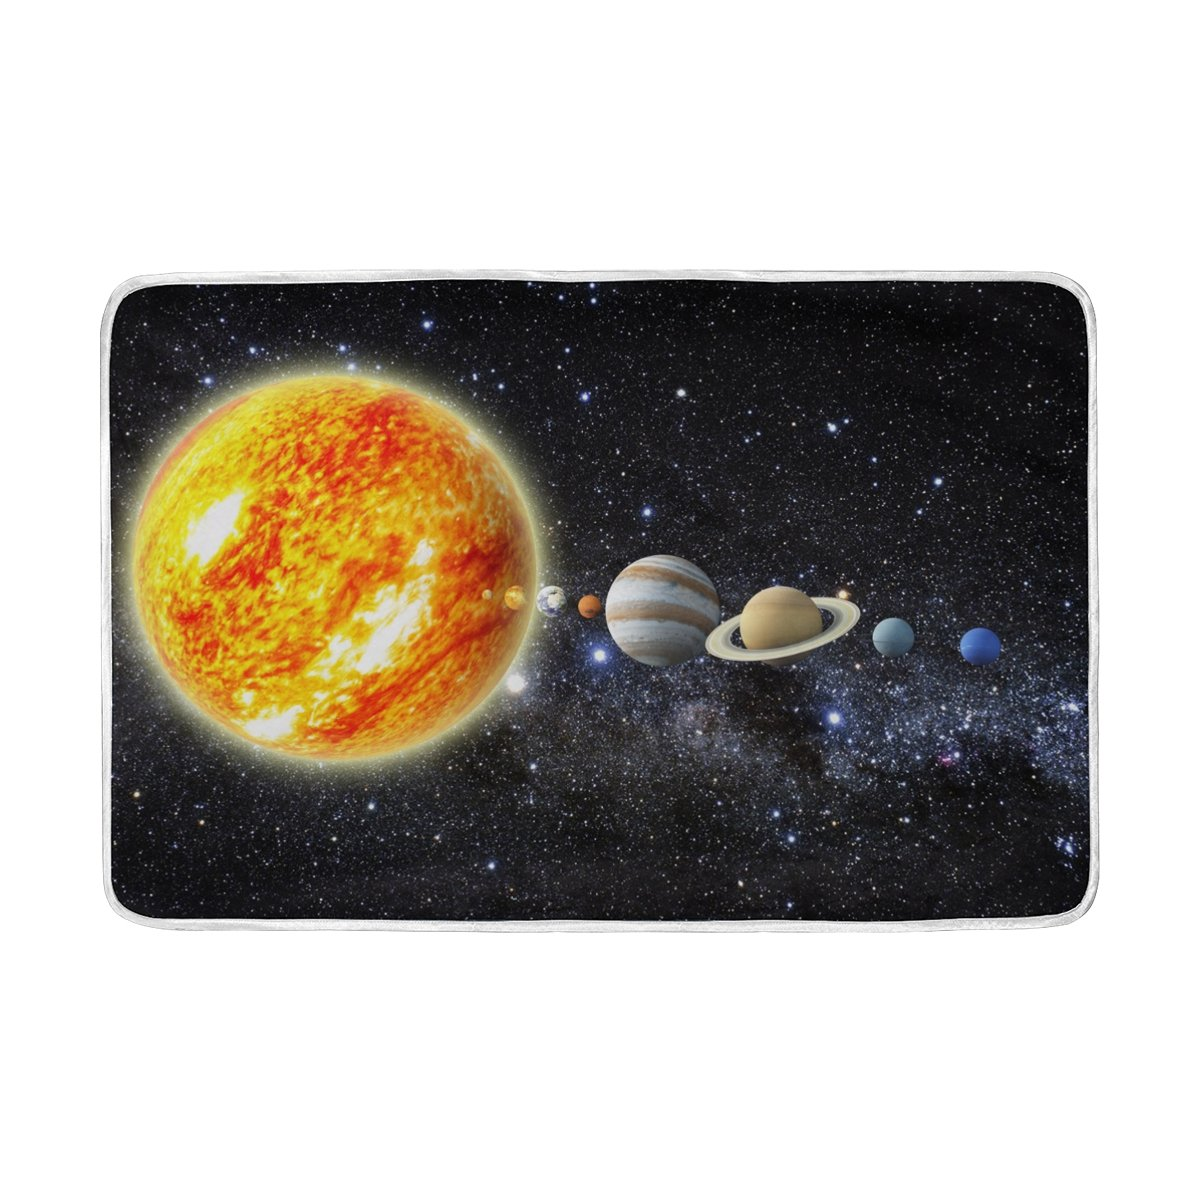 ALAZA Solar System Stars Outer Space Universe Blanket Luxury Throw Personalized Stylish Fuzzy Soft Warm Lightweight Blanket for Bed Counch All Season Unisex Adult Men Women Boys Girls 60x90 inches